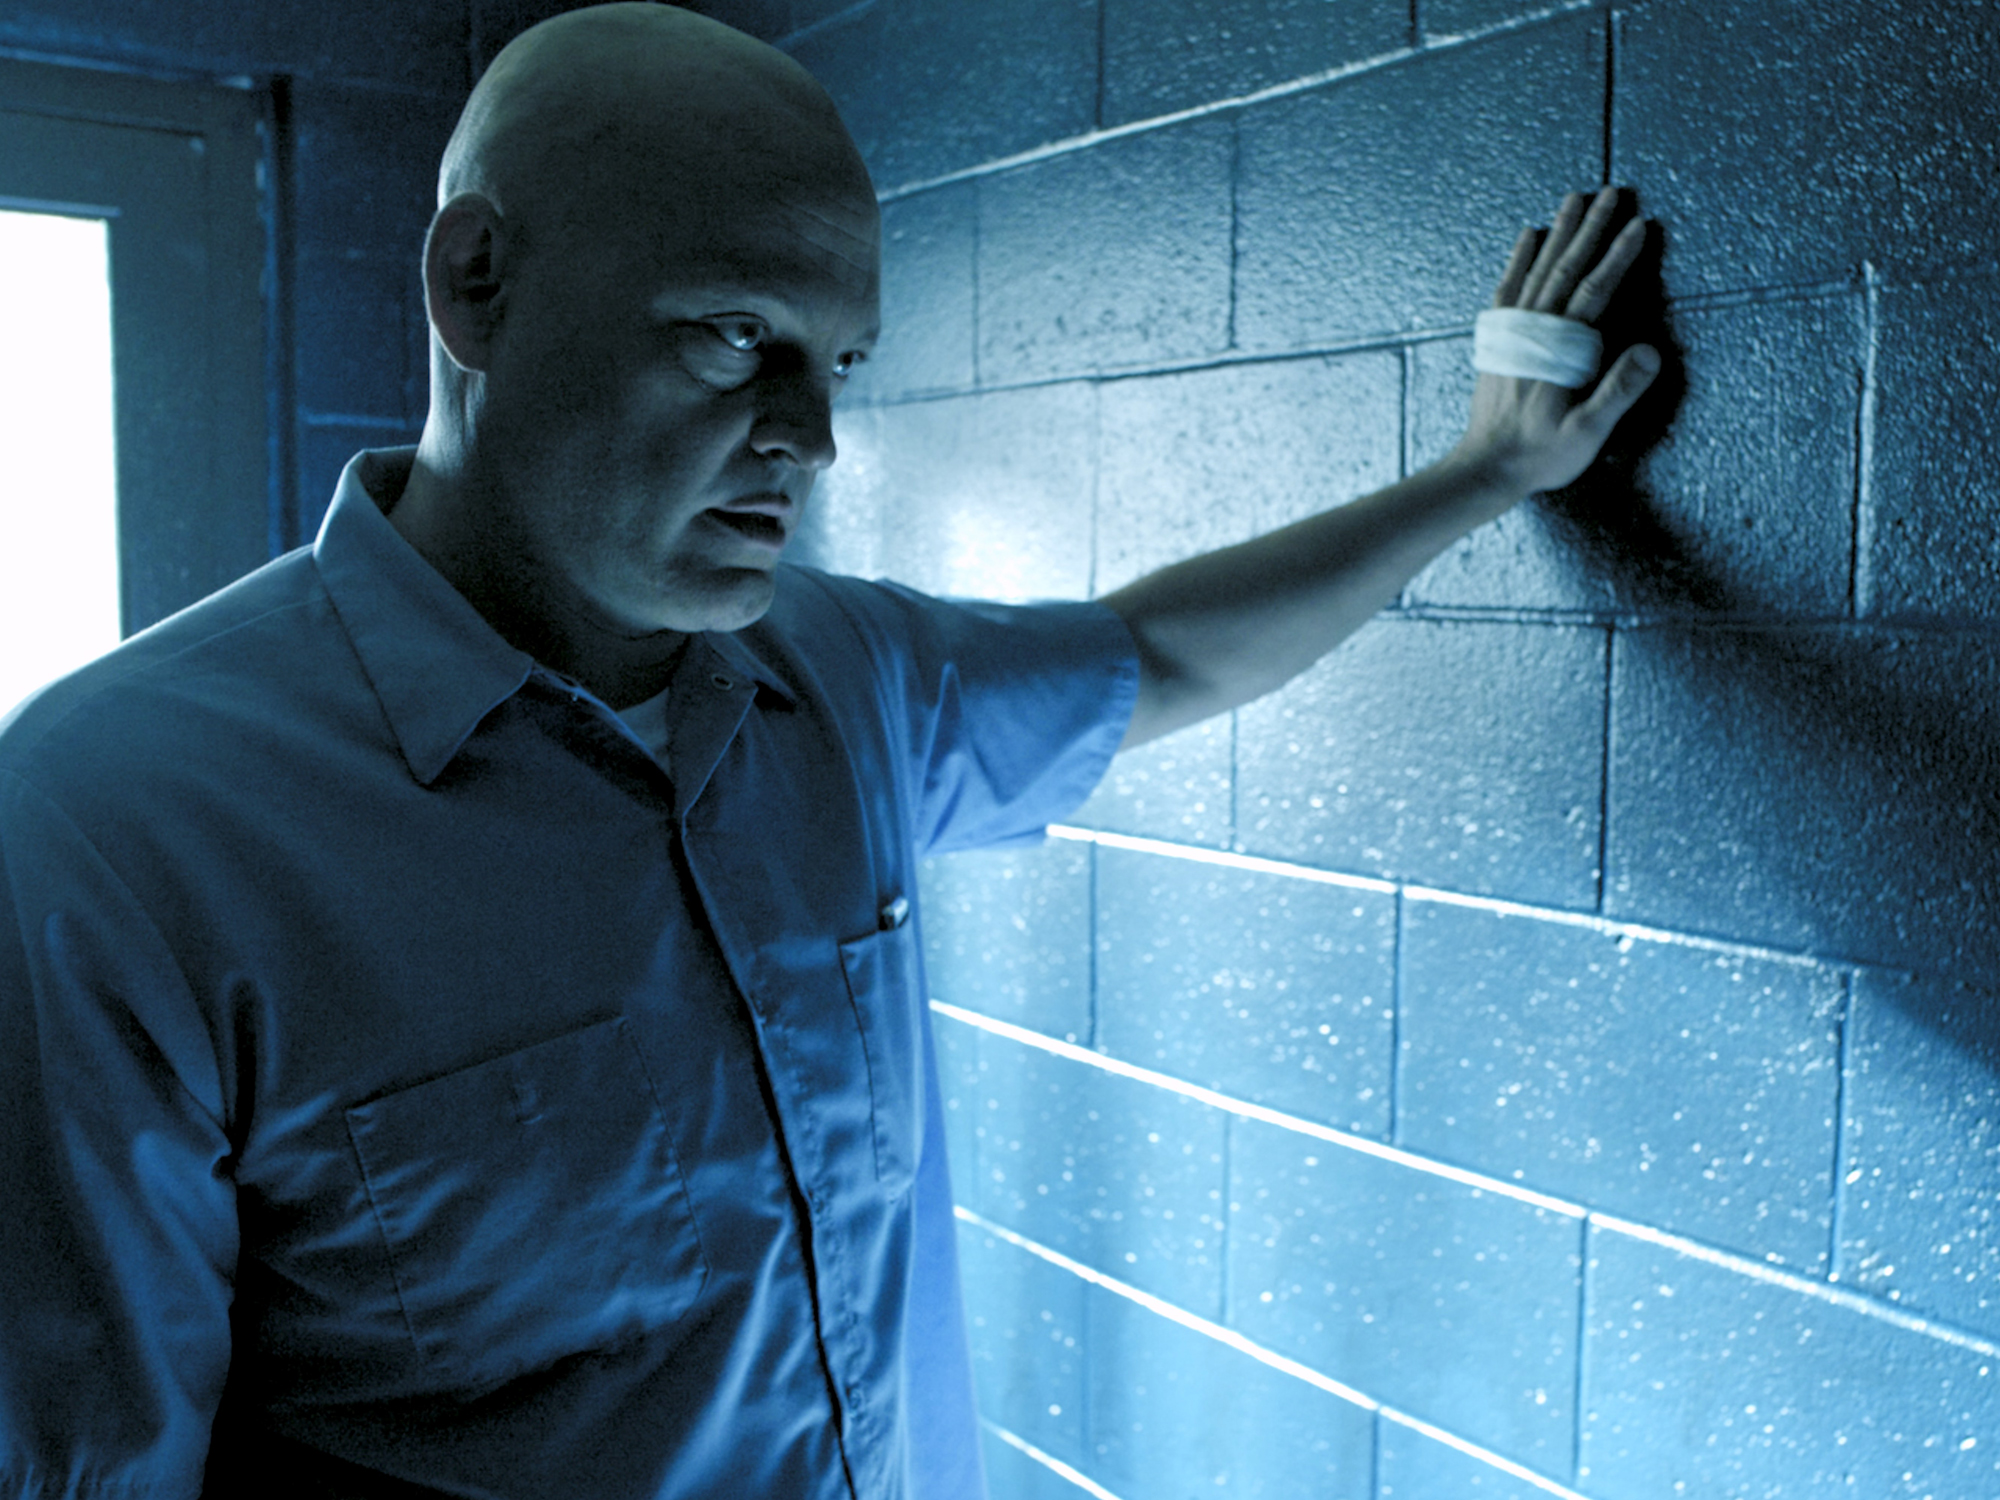 Brawl-Cell-Block-99-film-review.jpg